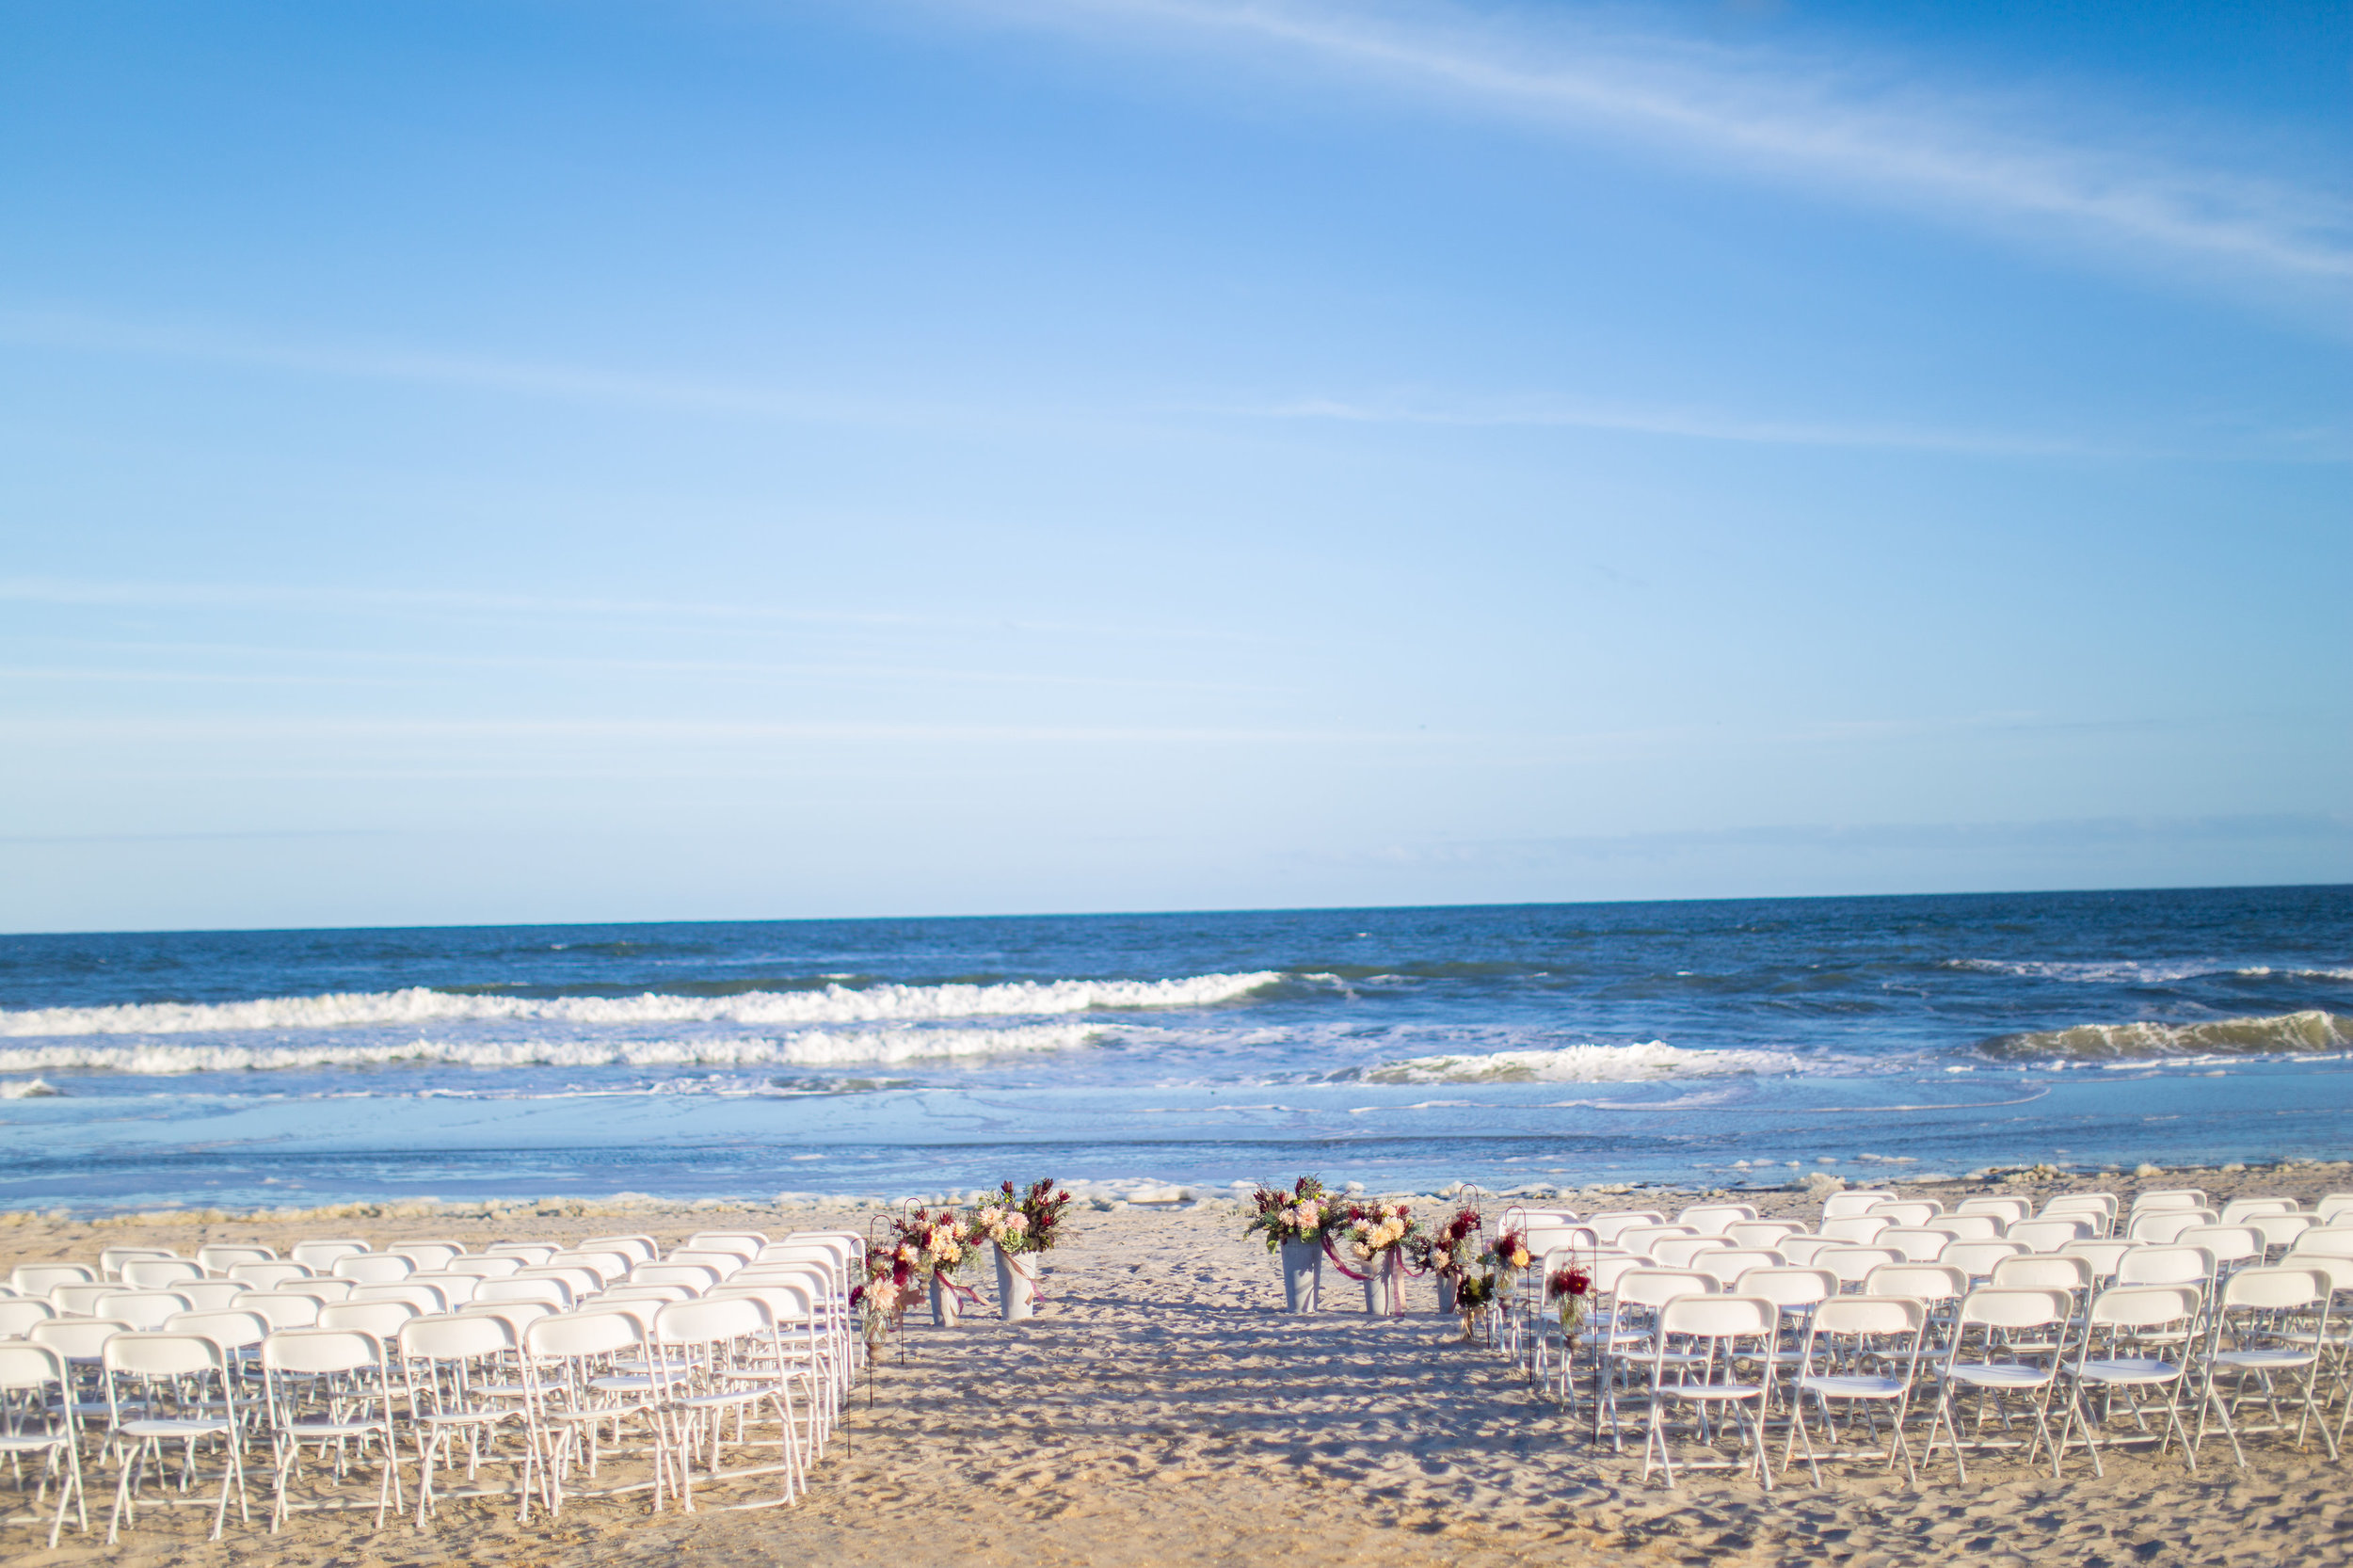 We loved the simplicity of Jenna and Jon's ceremony space. The white folding chairs leave little to distract from the crashing waves of the ocean and blue skies. The pop of color in the aisle arrangements and galvanized buckets at the altar brought all the focus to the couple as they said their vows.